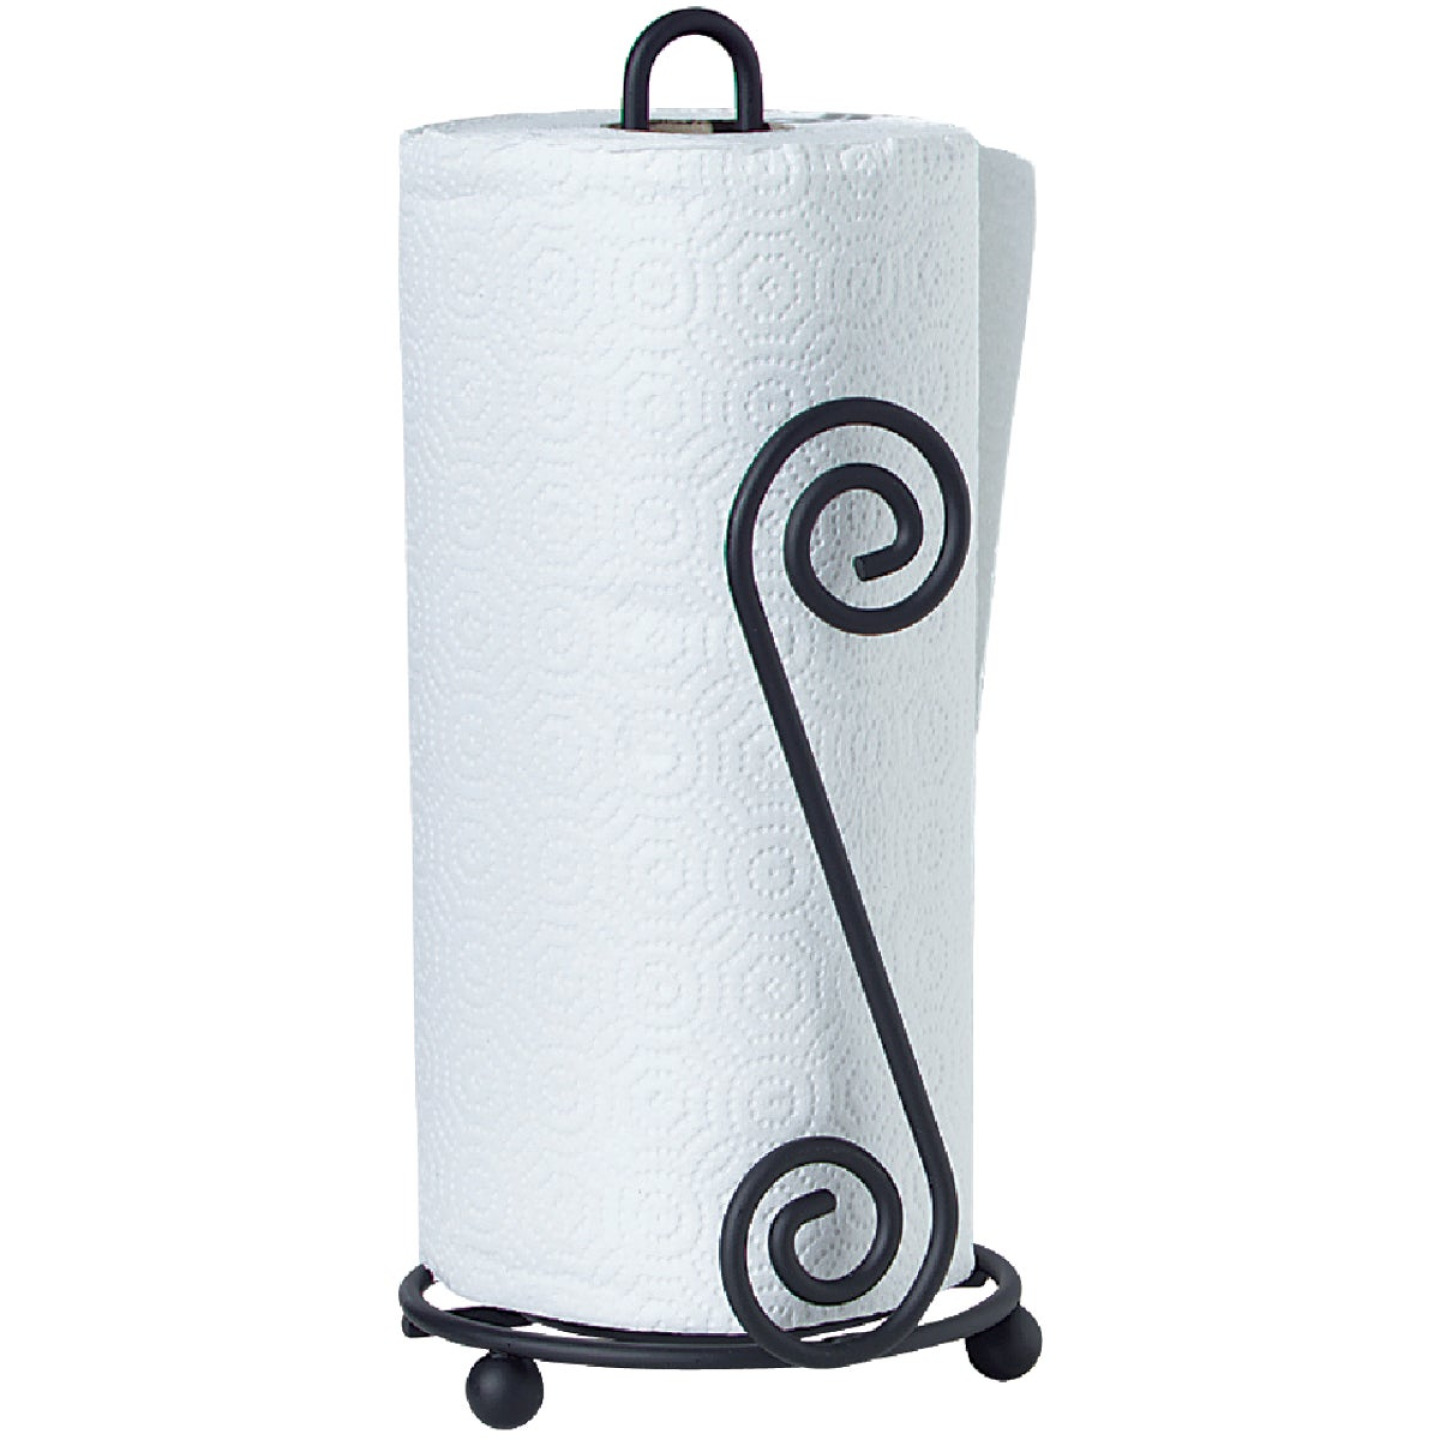 Spectrum Elegant Scroll Countertop Portable Paper Towel Holder Image 2